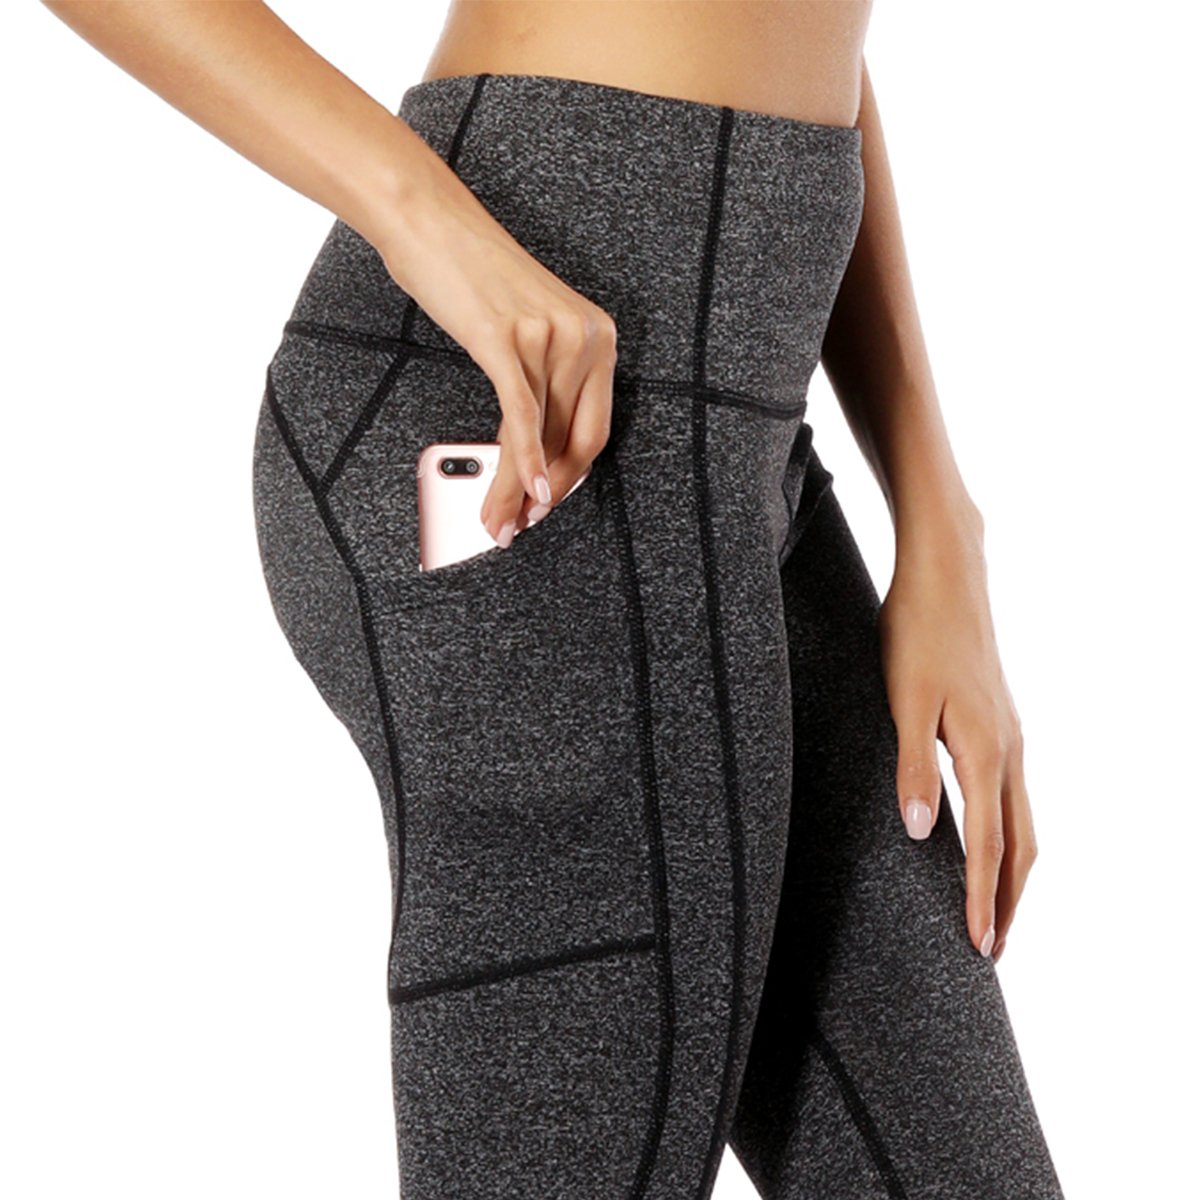 FUURY Womens High Waist Yoga Pants Capri Tummy Control Workout Running Leggings 4 Way Stretch Yoga Leggings with 2 Out Pockets …